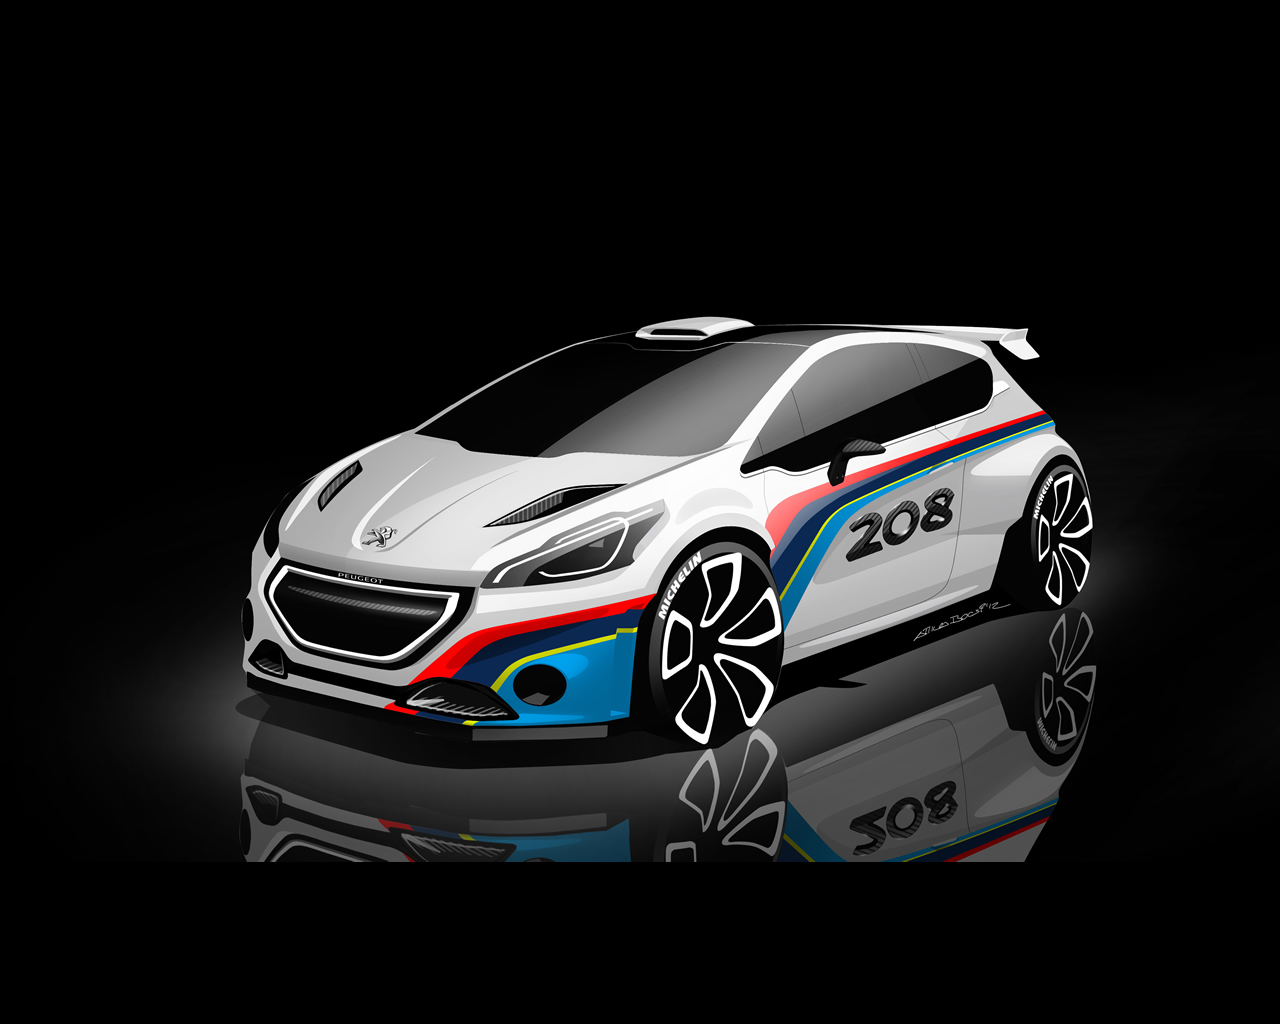 2019 Peugeot 208 R5 Rally car photo - 3